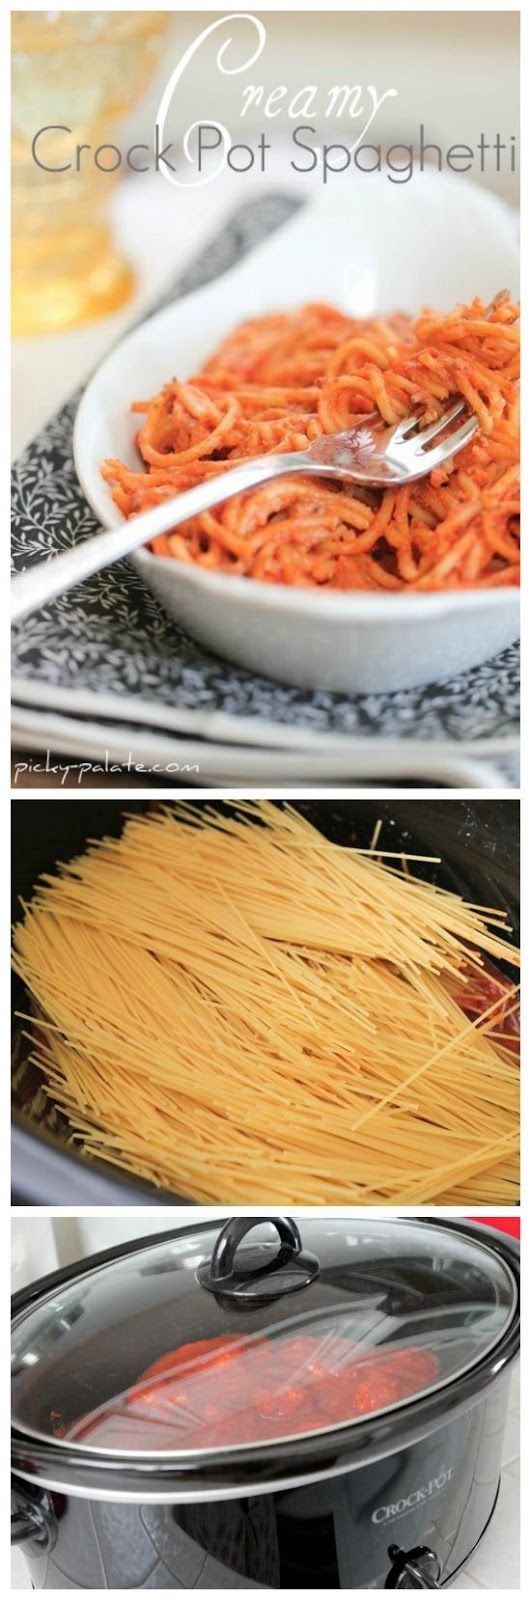 Creamy Crock Pot Spaghetti from Picky Palate sounds like a great idea ...